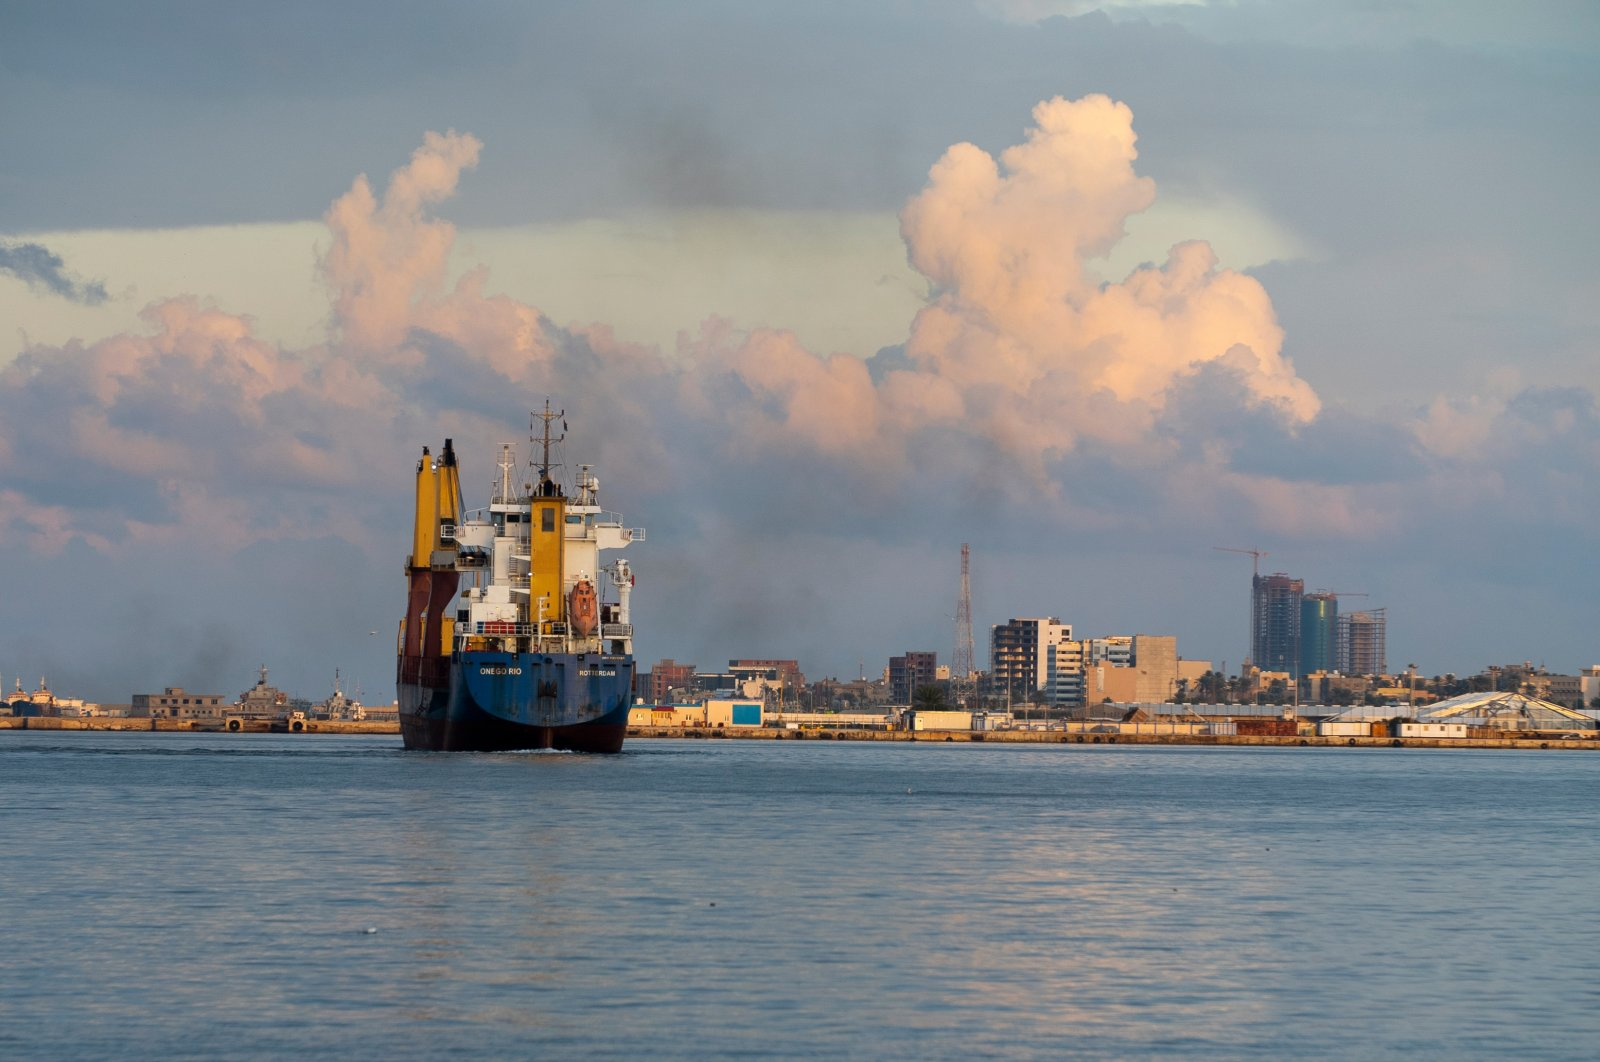 A container ship leaves the port of Tripoli after unloading its cargo, Tripoli, Libya, Nov. 25, 2020. (Shutterstock Photo)